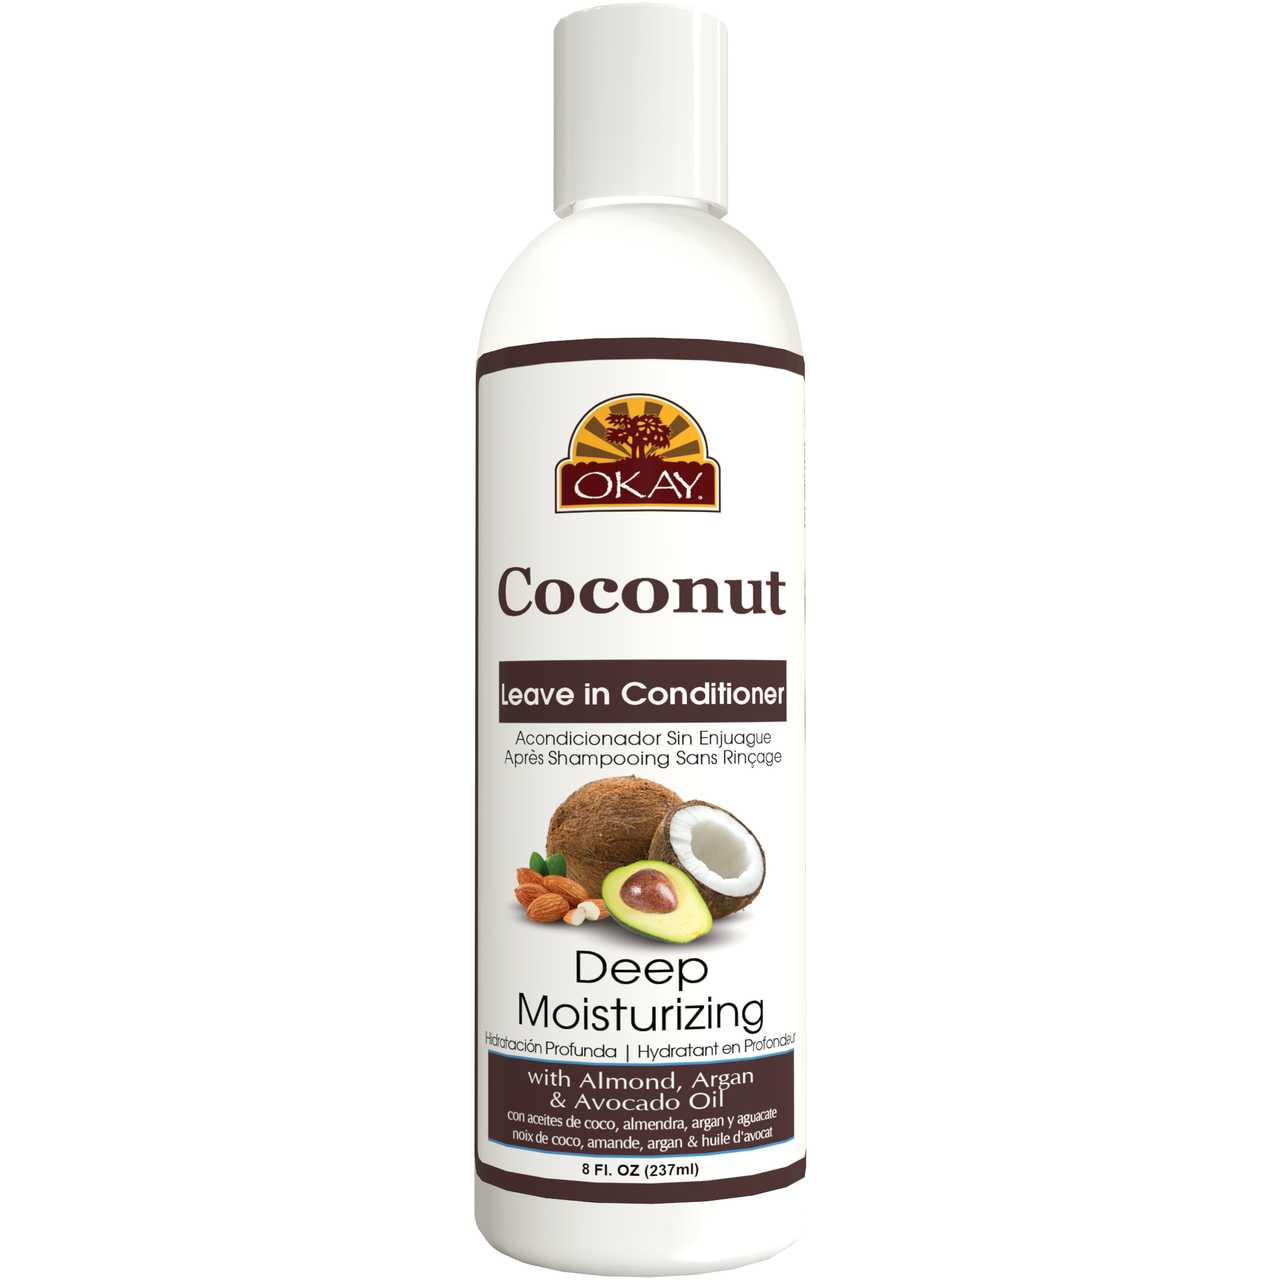 Okay Coconut Deep Moisturizing Leave In Conditioner Helps